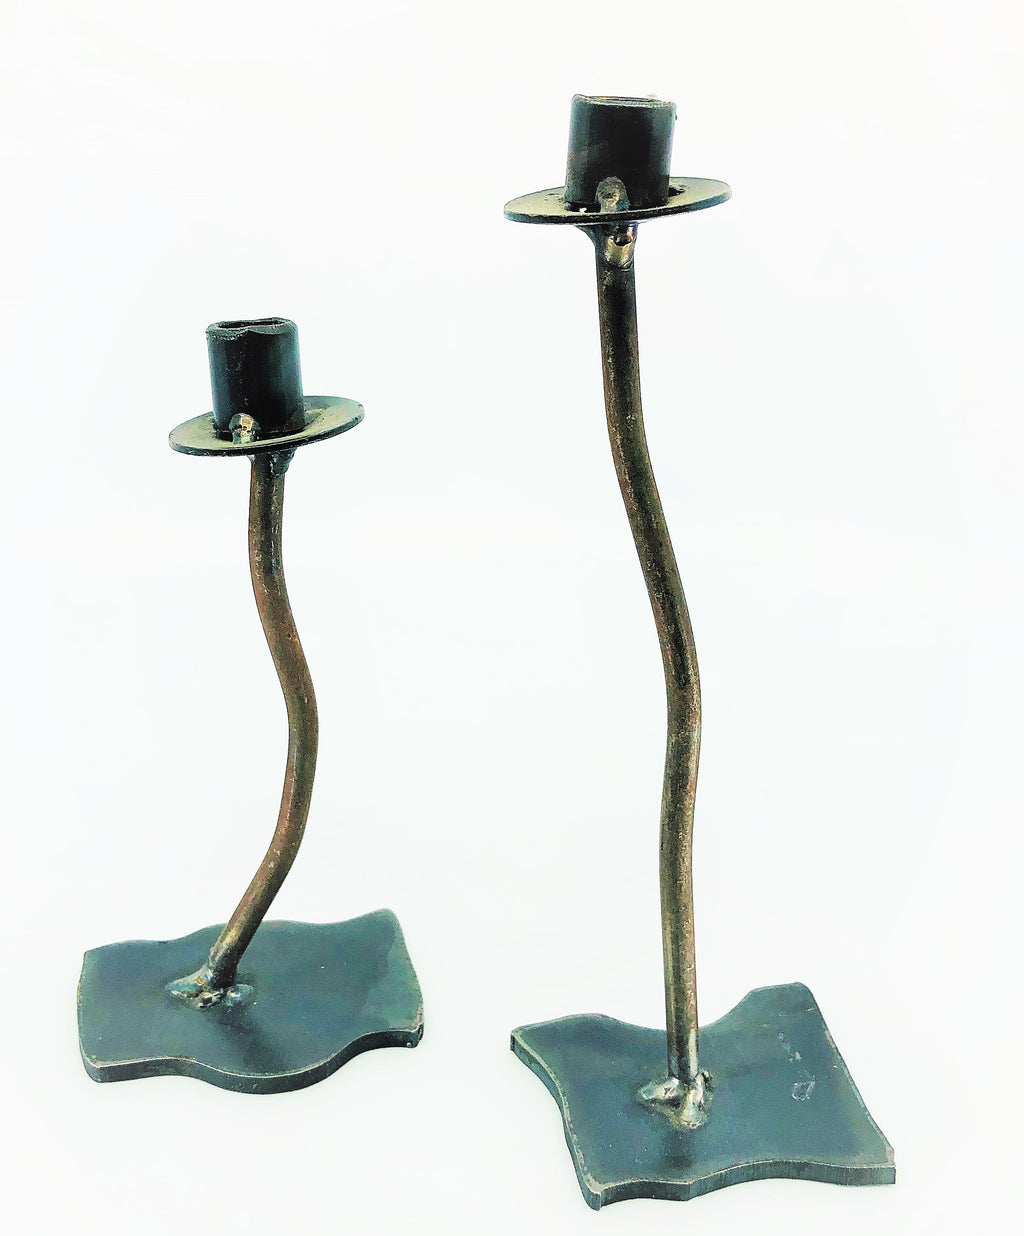 Wavy Brutalist Candlestick Holders